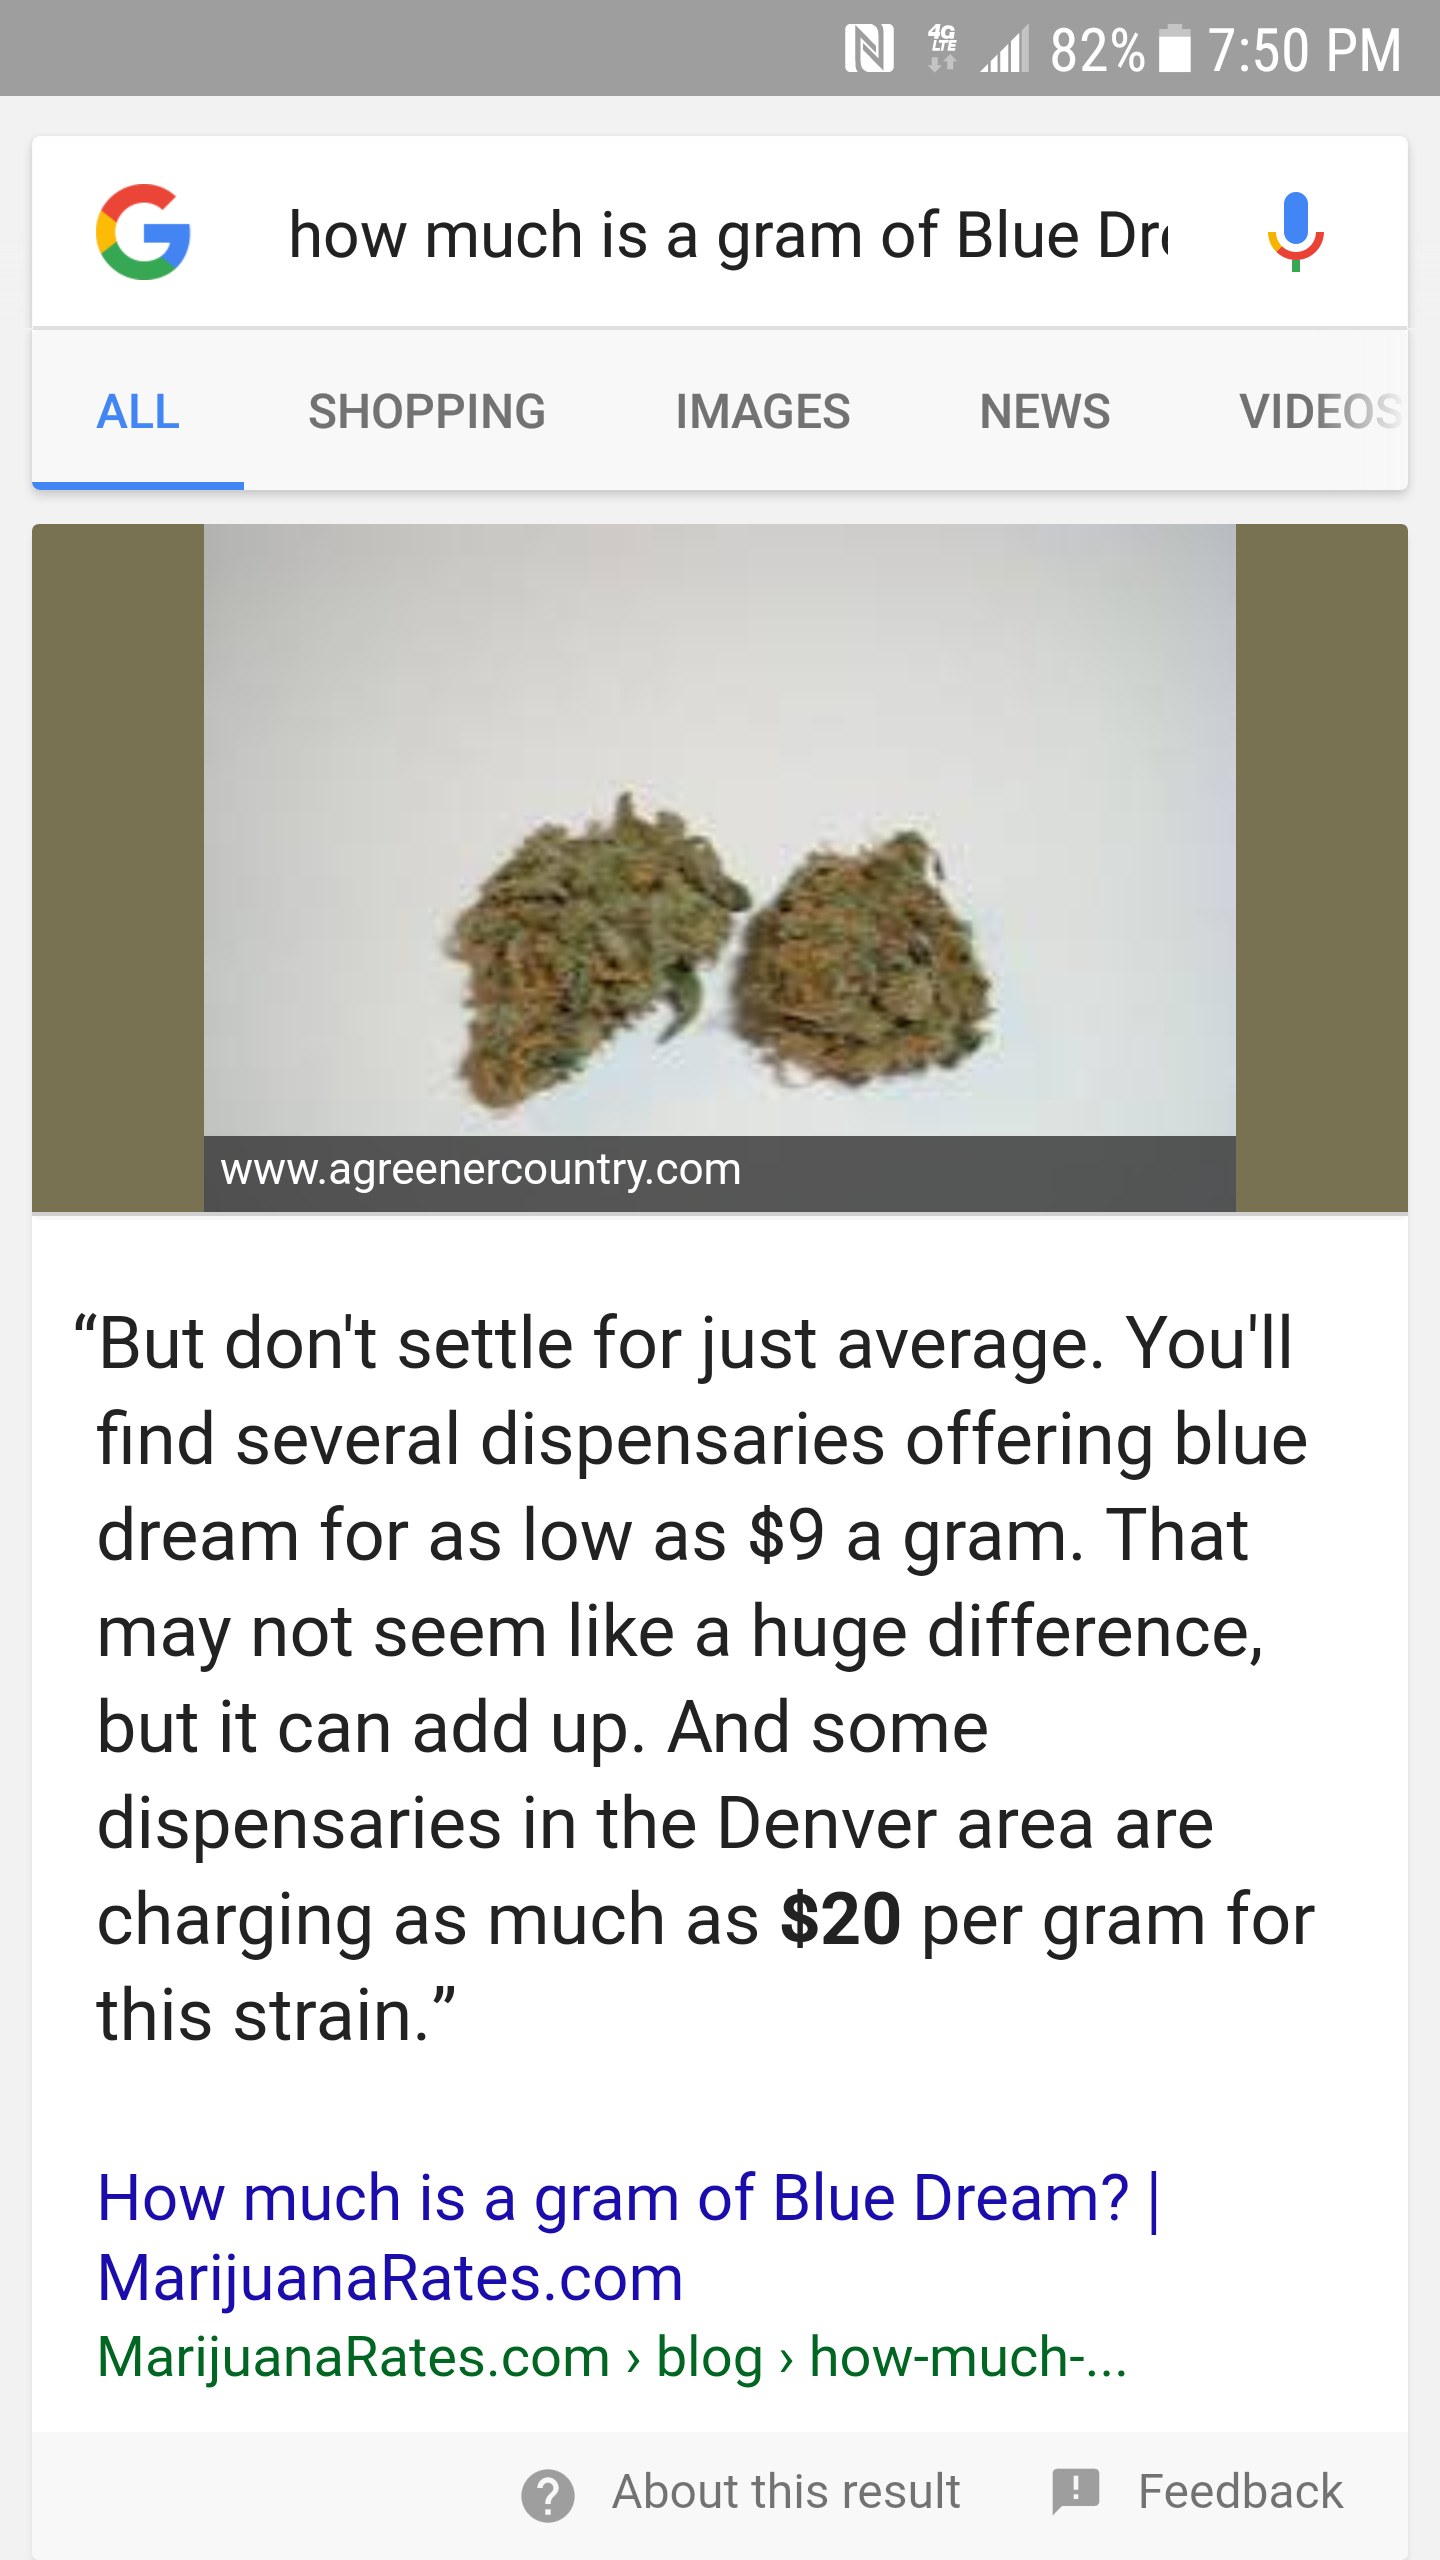 blue-dream-google-answer-box